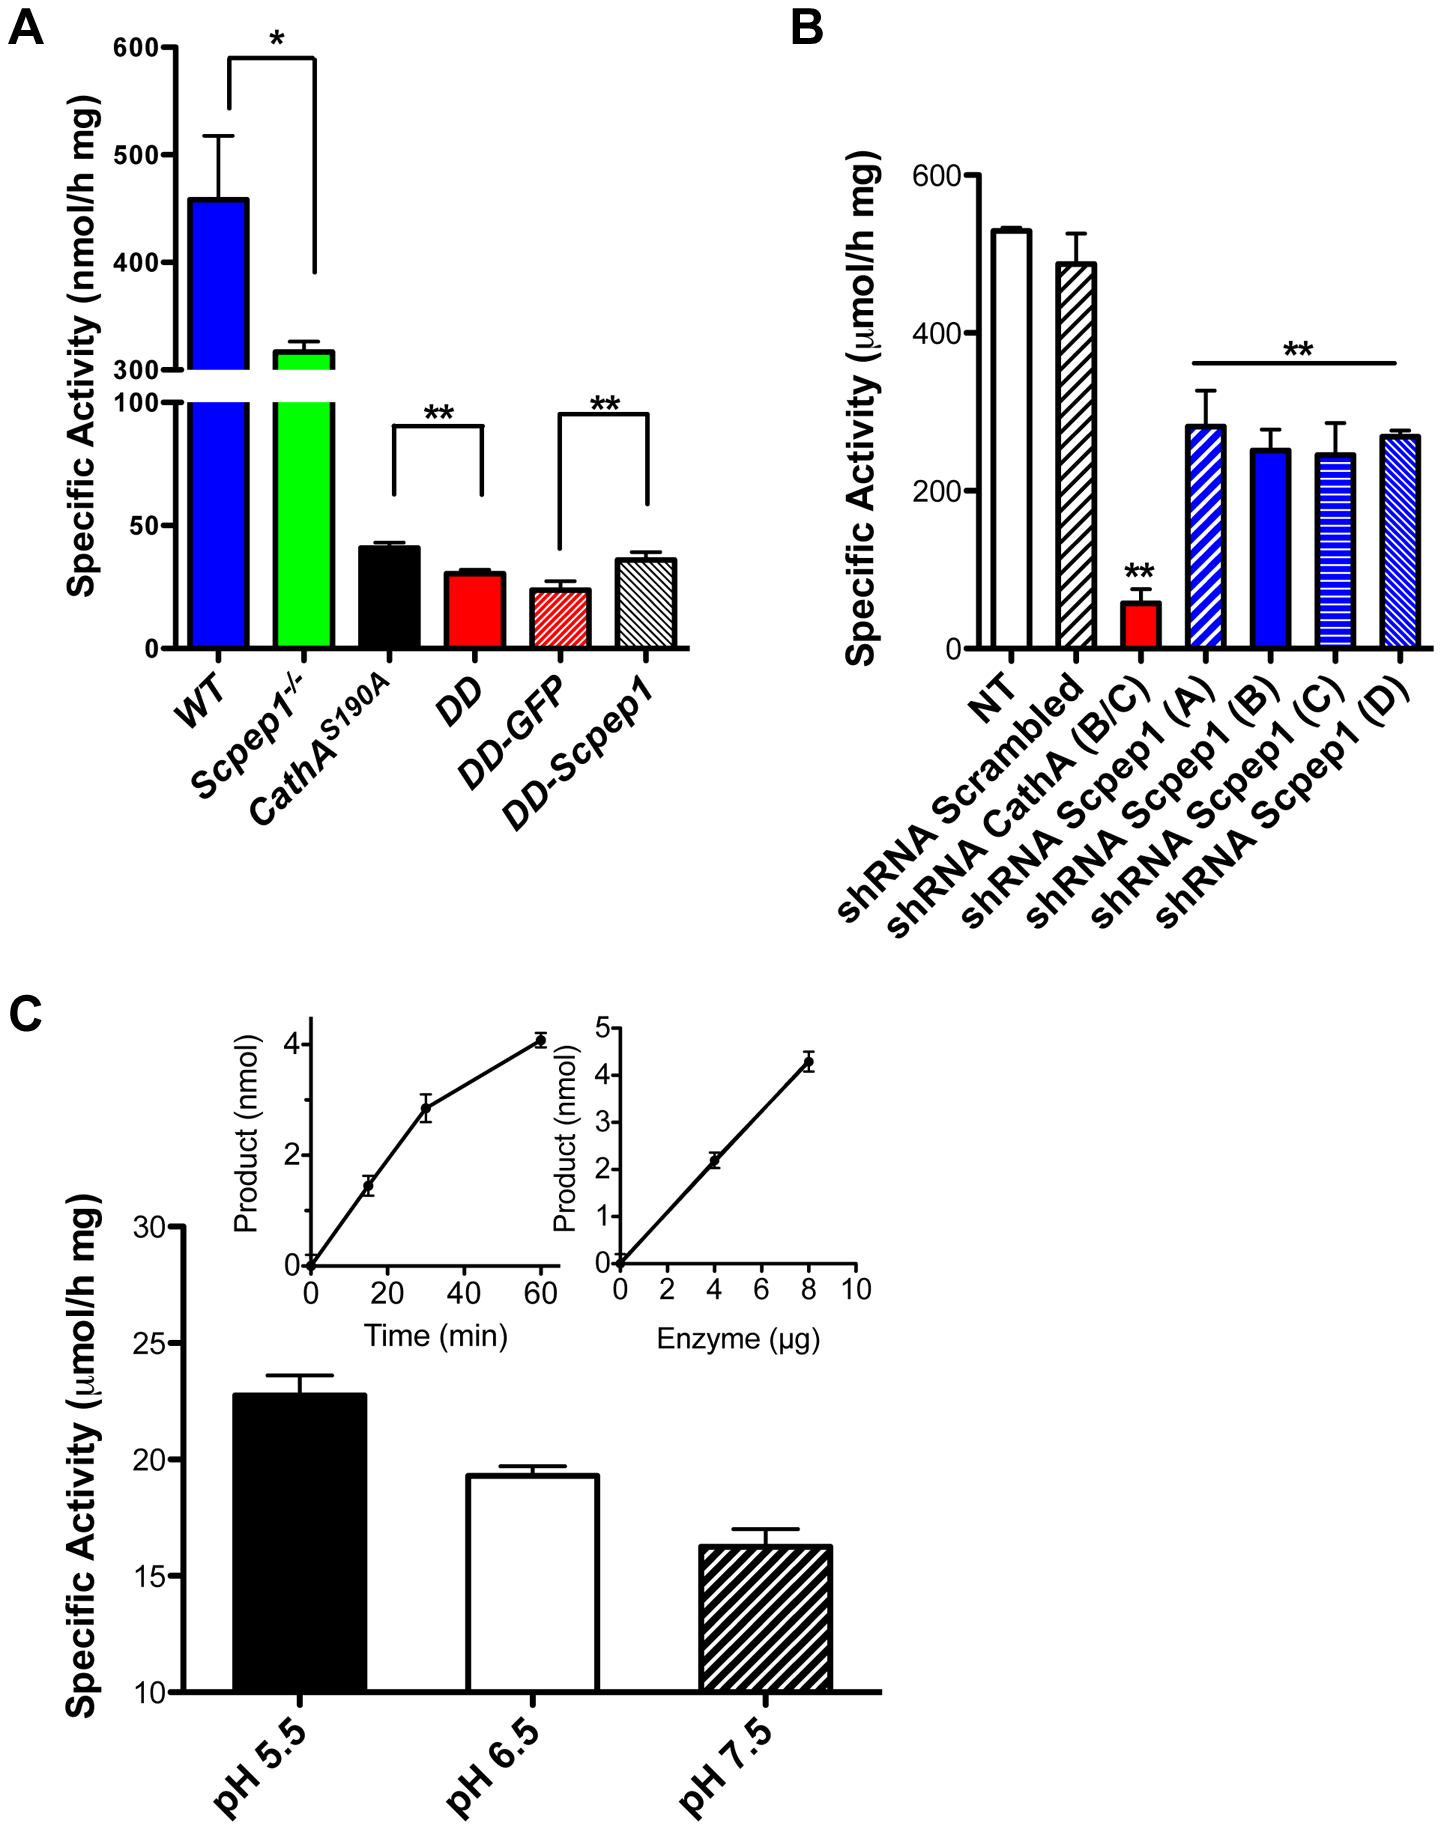 Scpep1 has carboxypeptidase activity against ET-1.